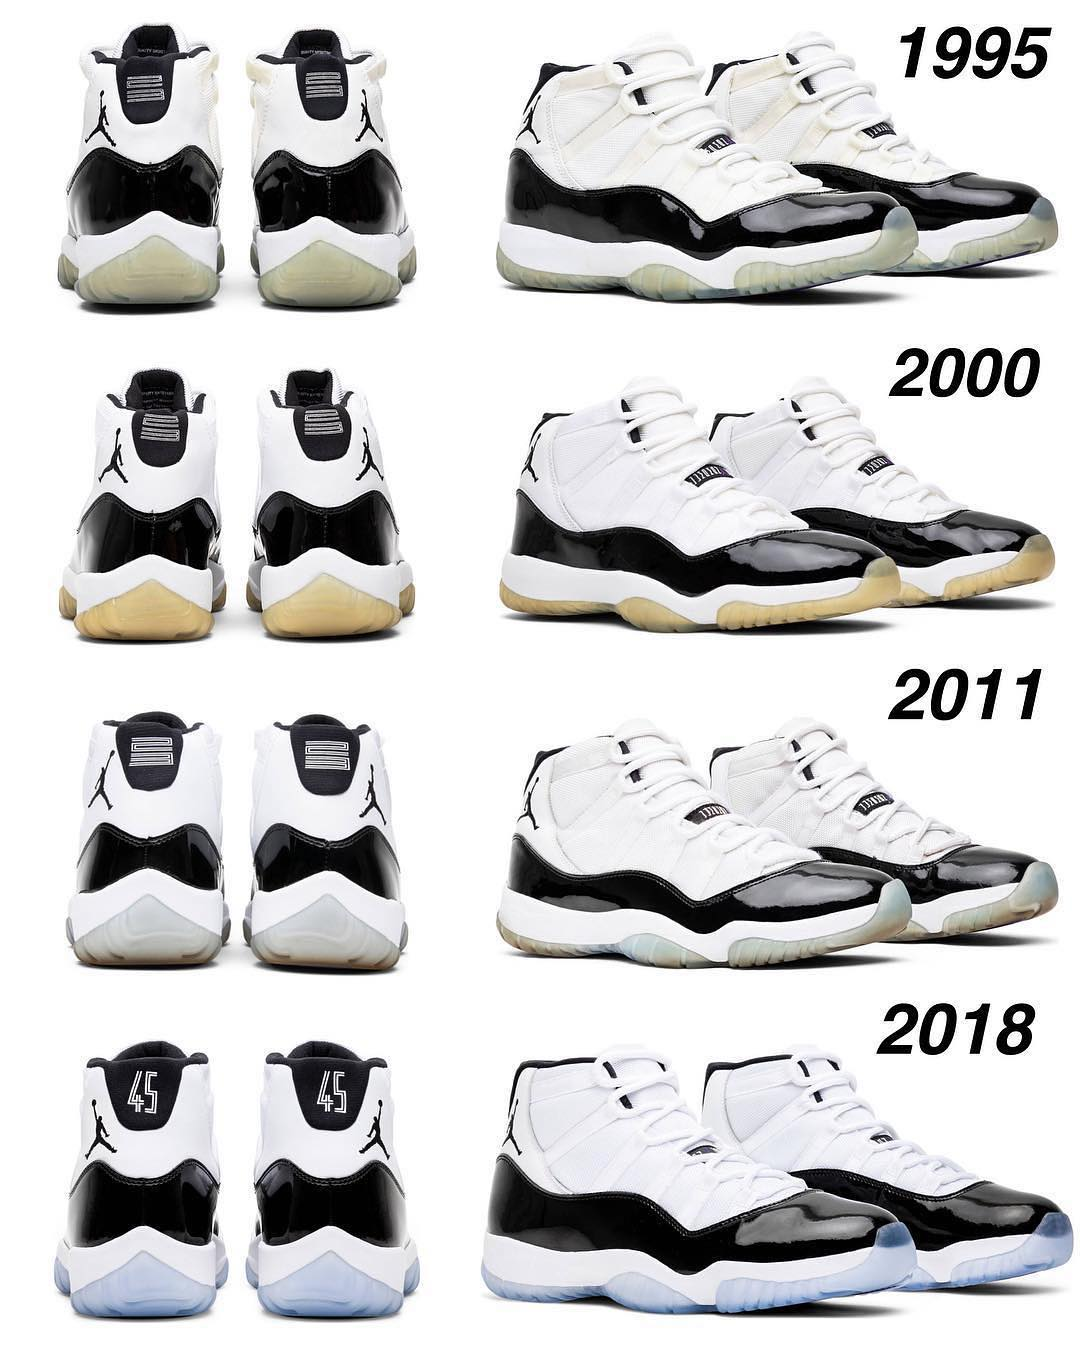 c9fc592168d 1995 2000 2011 2018 Jordan 11 Concord What Was The Best Year Via  @zsneakerhe…